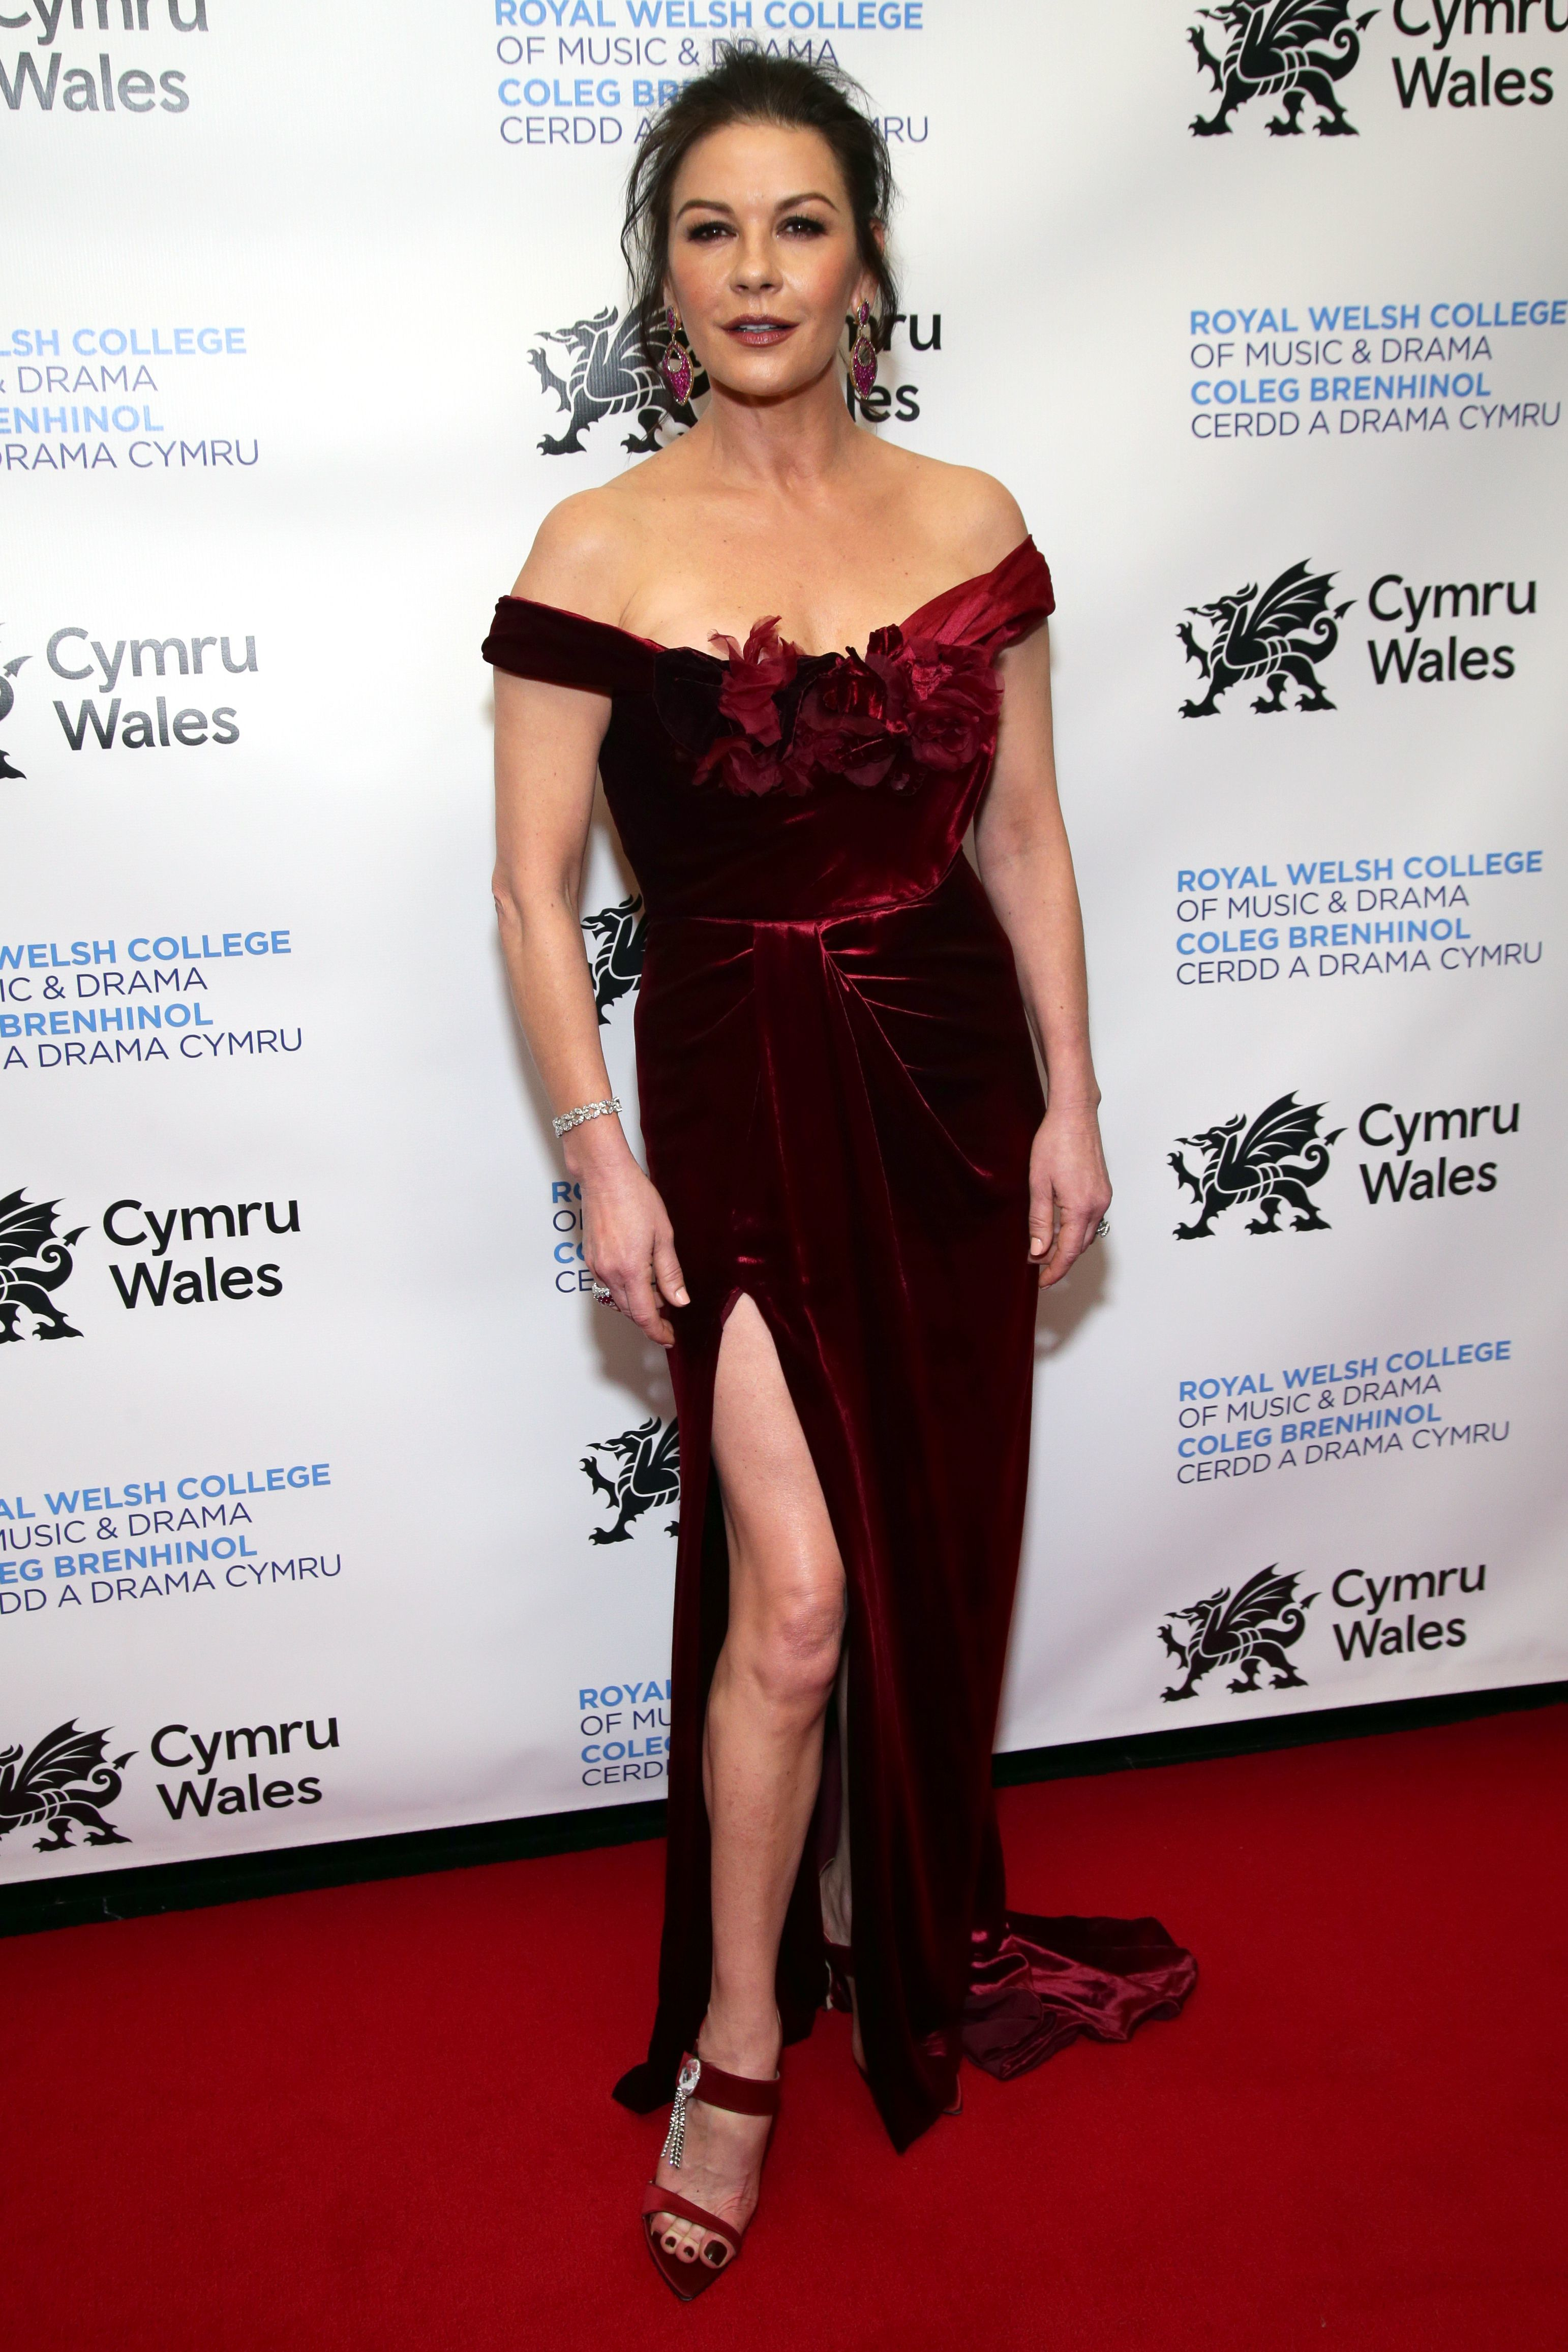 Catherine Zeta Jones attends Wales' National Day Gala hosted by The Royal Welsh College of Music and Drama in New York City on March 1, 2019.